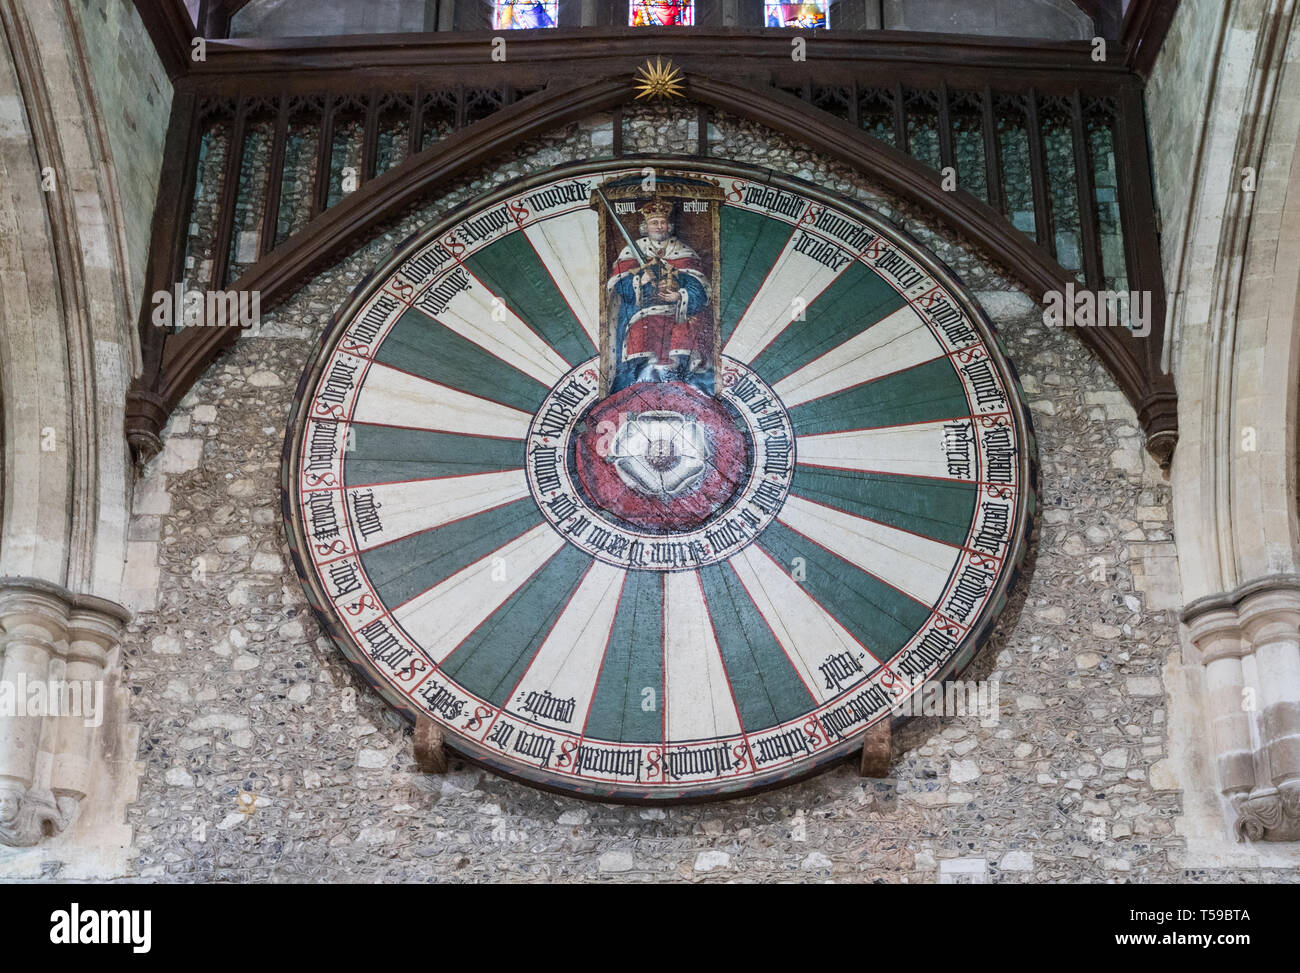 King Arthur's Round Table at The Great Hall, Winchester, Hampshire, UK - Stock Image